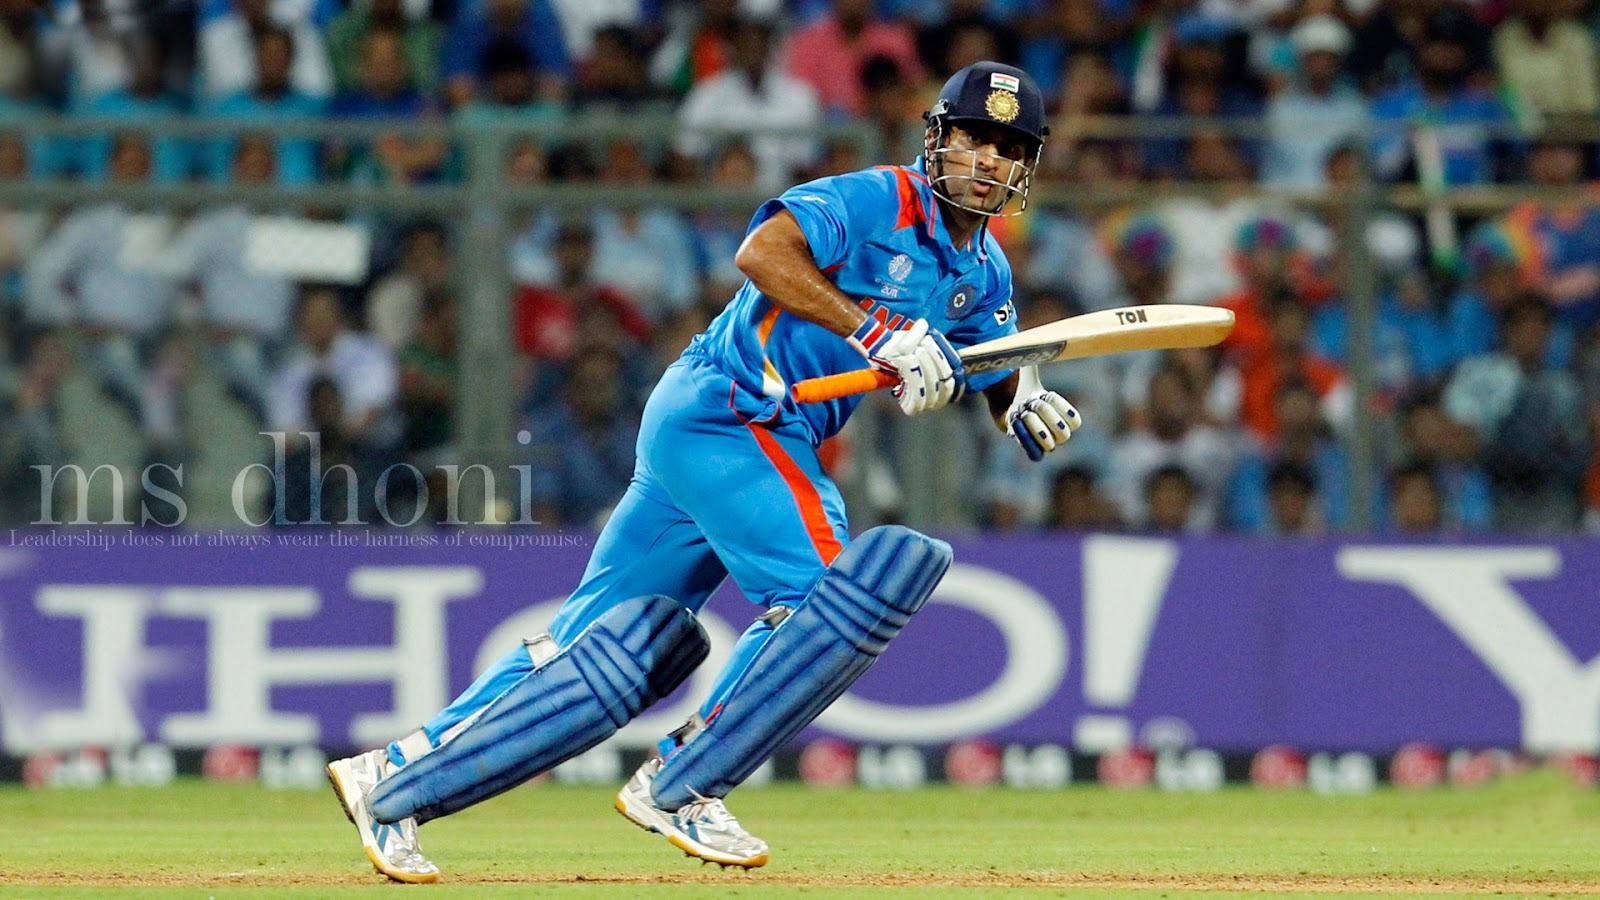 mahendra singh dhoni latest photos wallpapers downloads